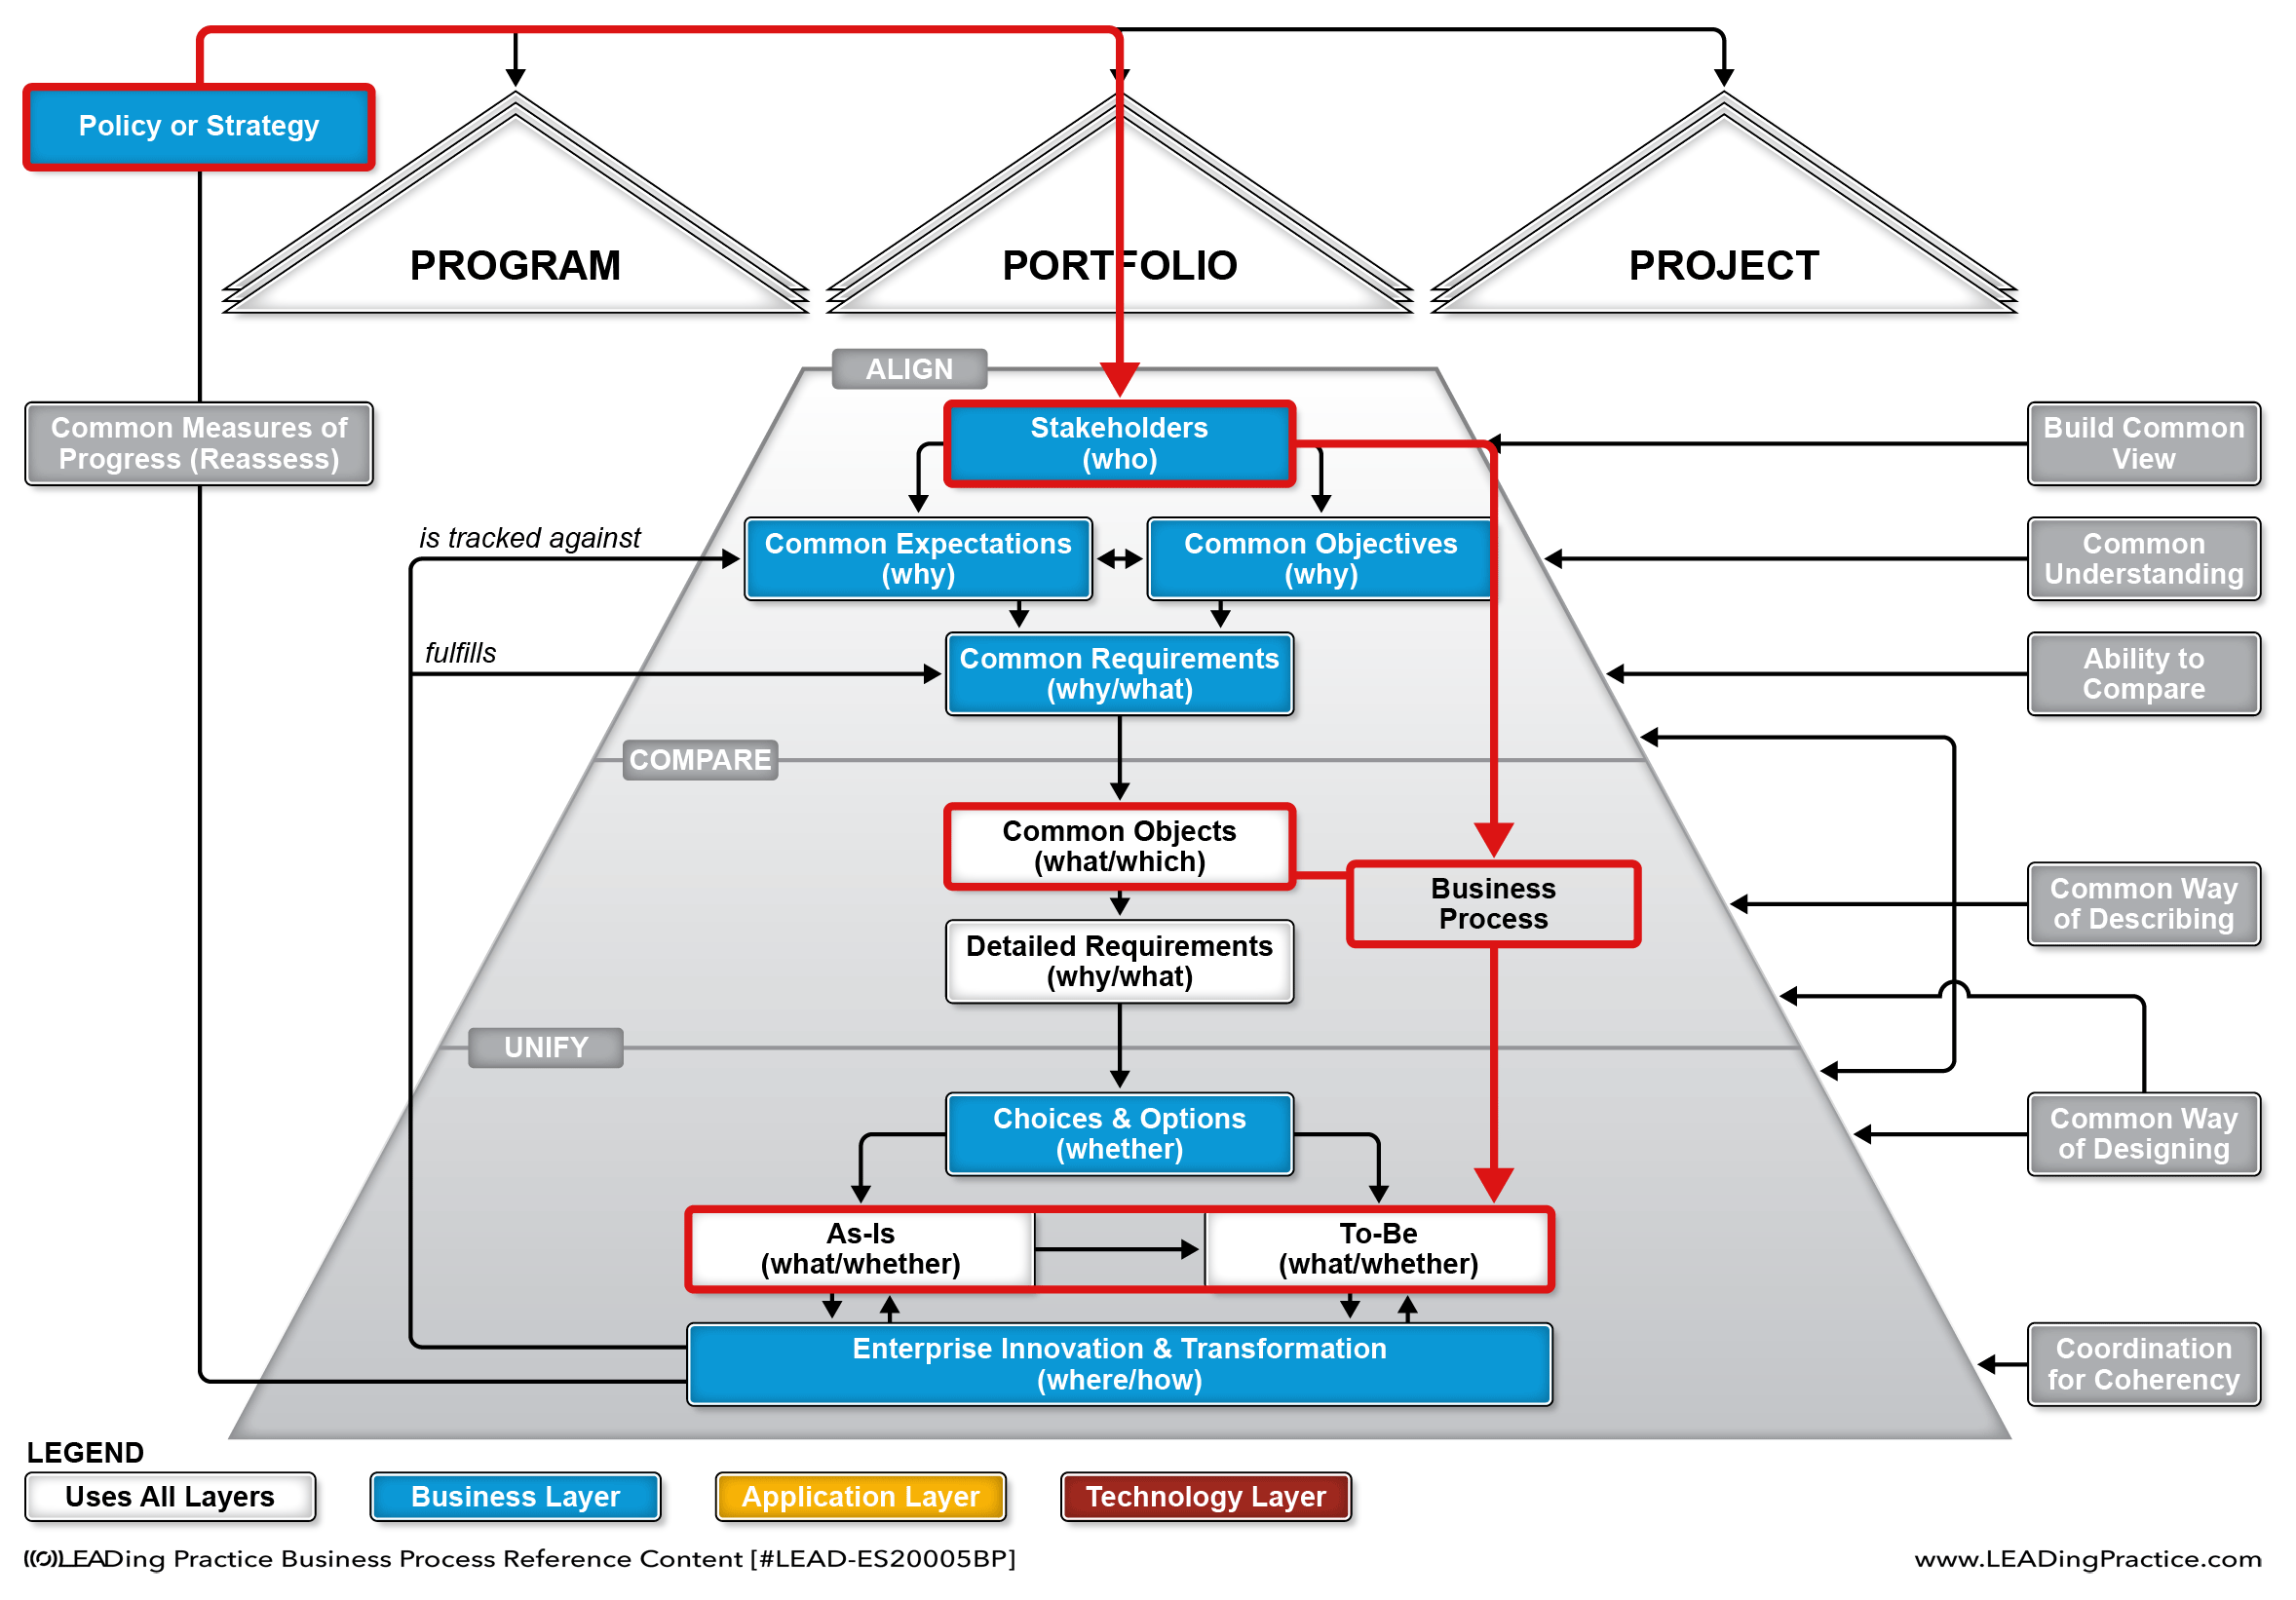 Bpm handbook business process management alignment bpm alignment from policy to enterprise innovation and transformation pooptronica Image collections